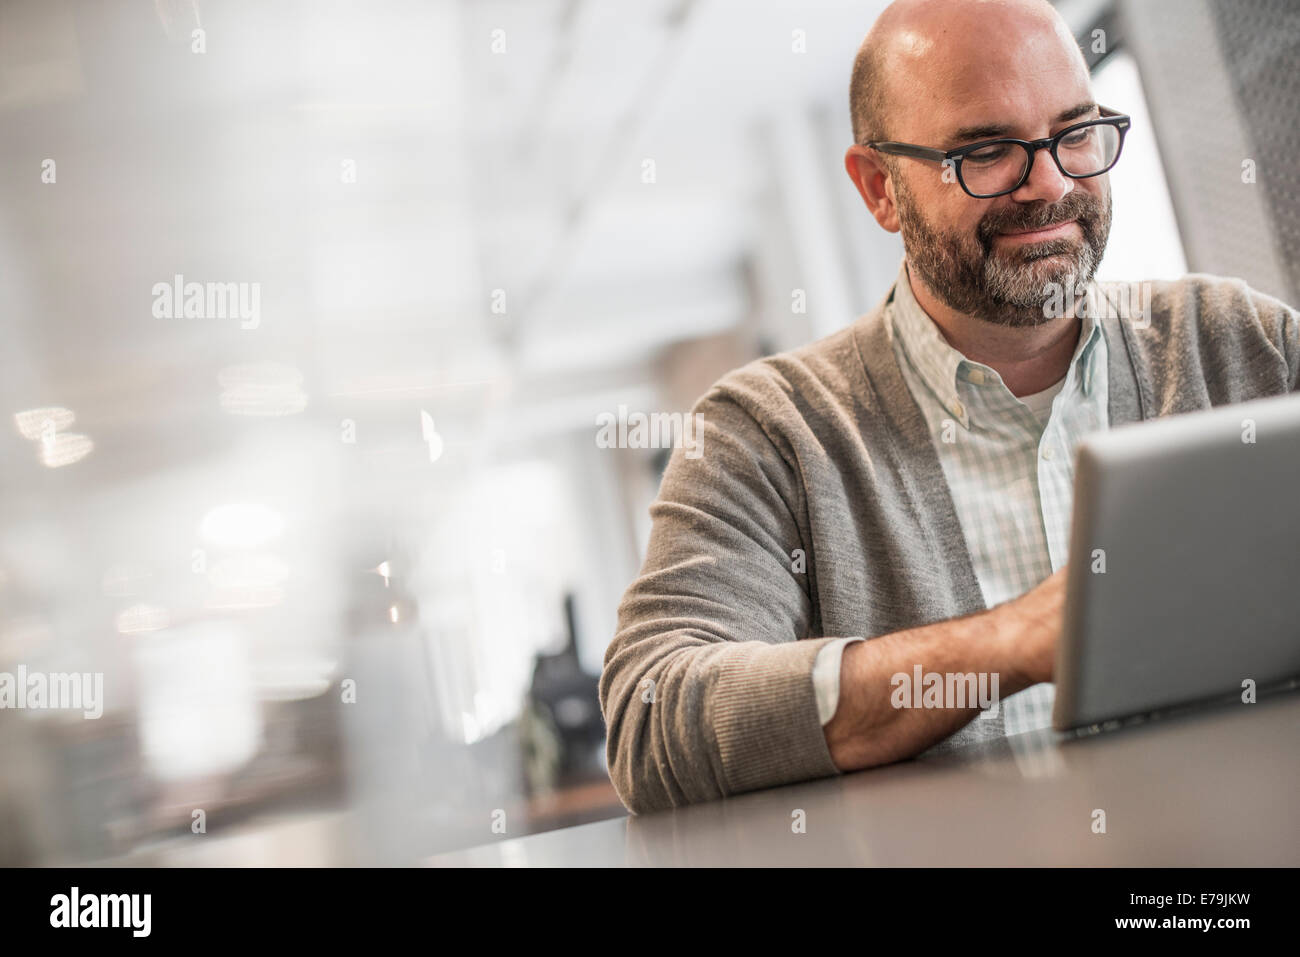 Office life. A man sitting at a table, working on a laptop. - Stock Image